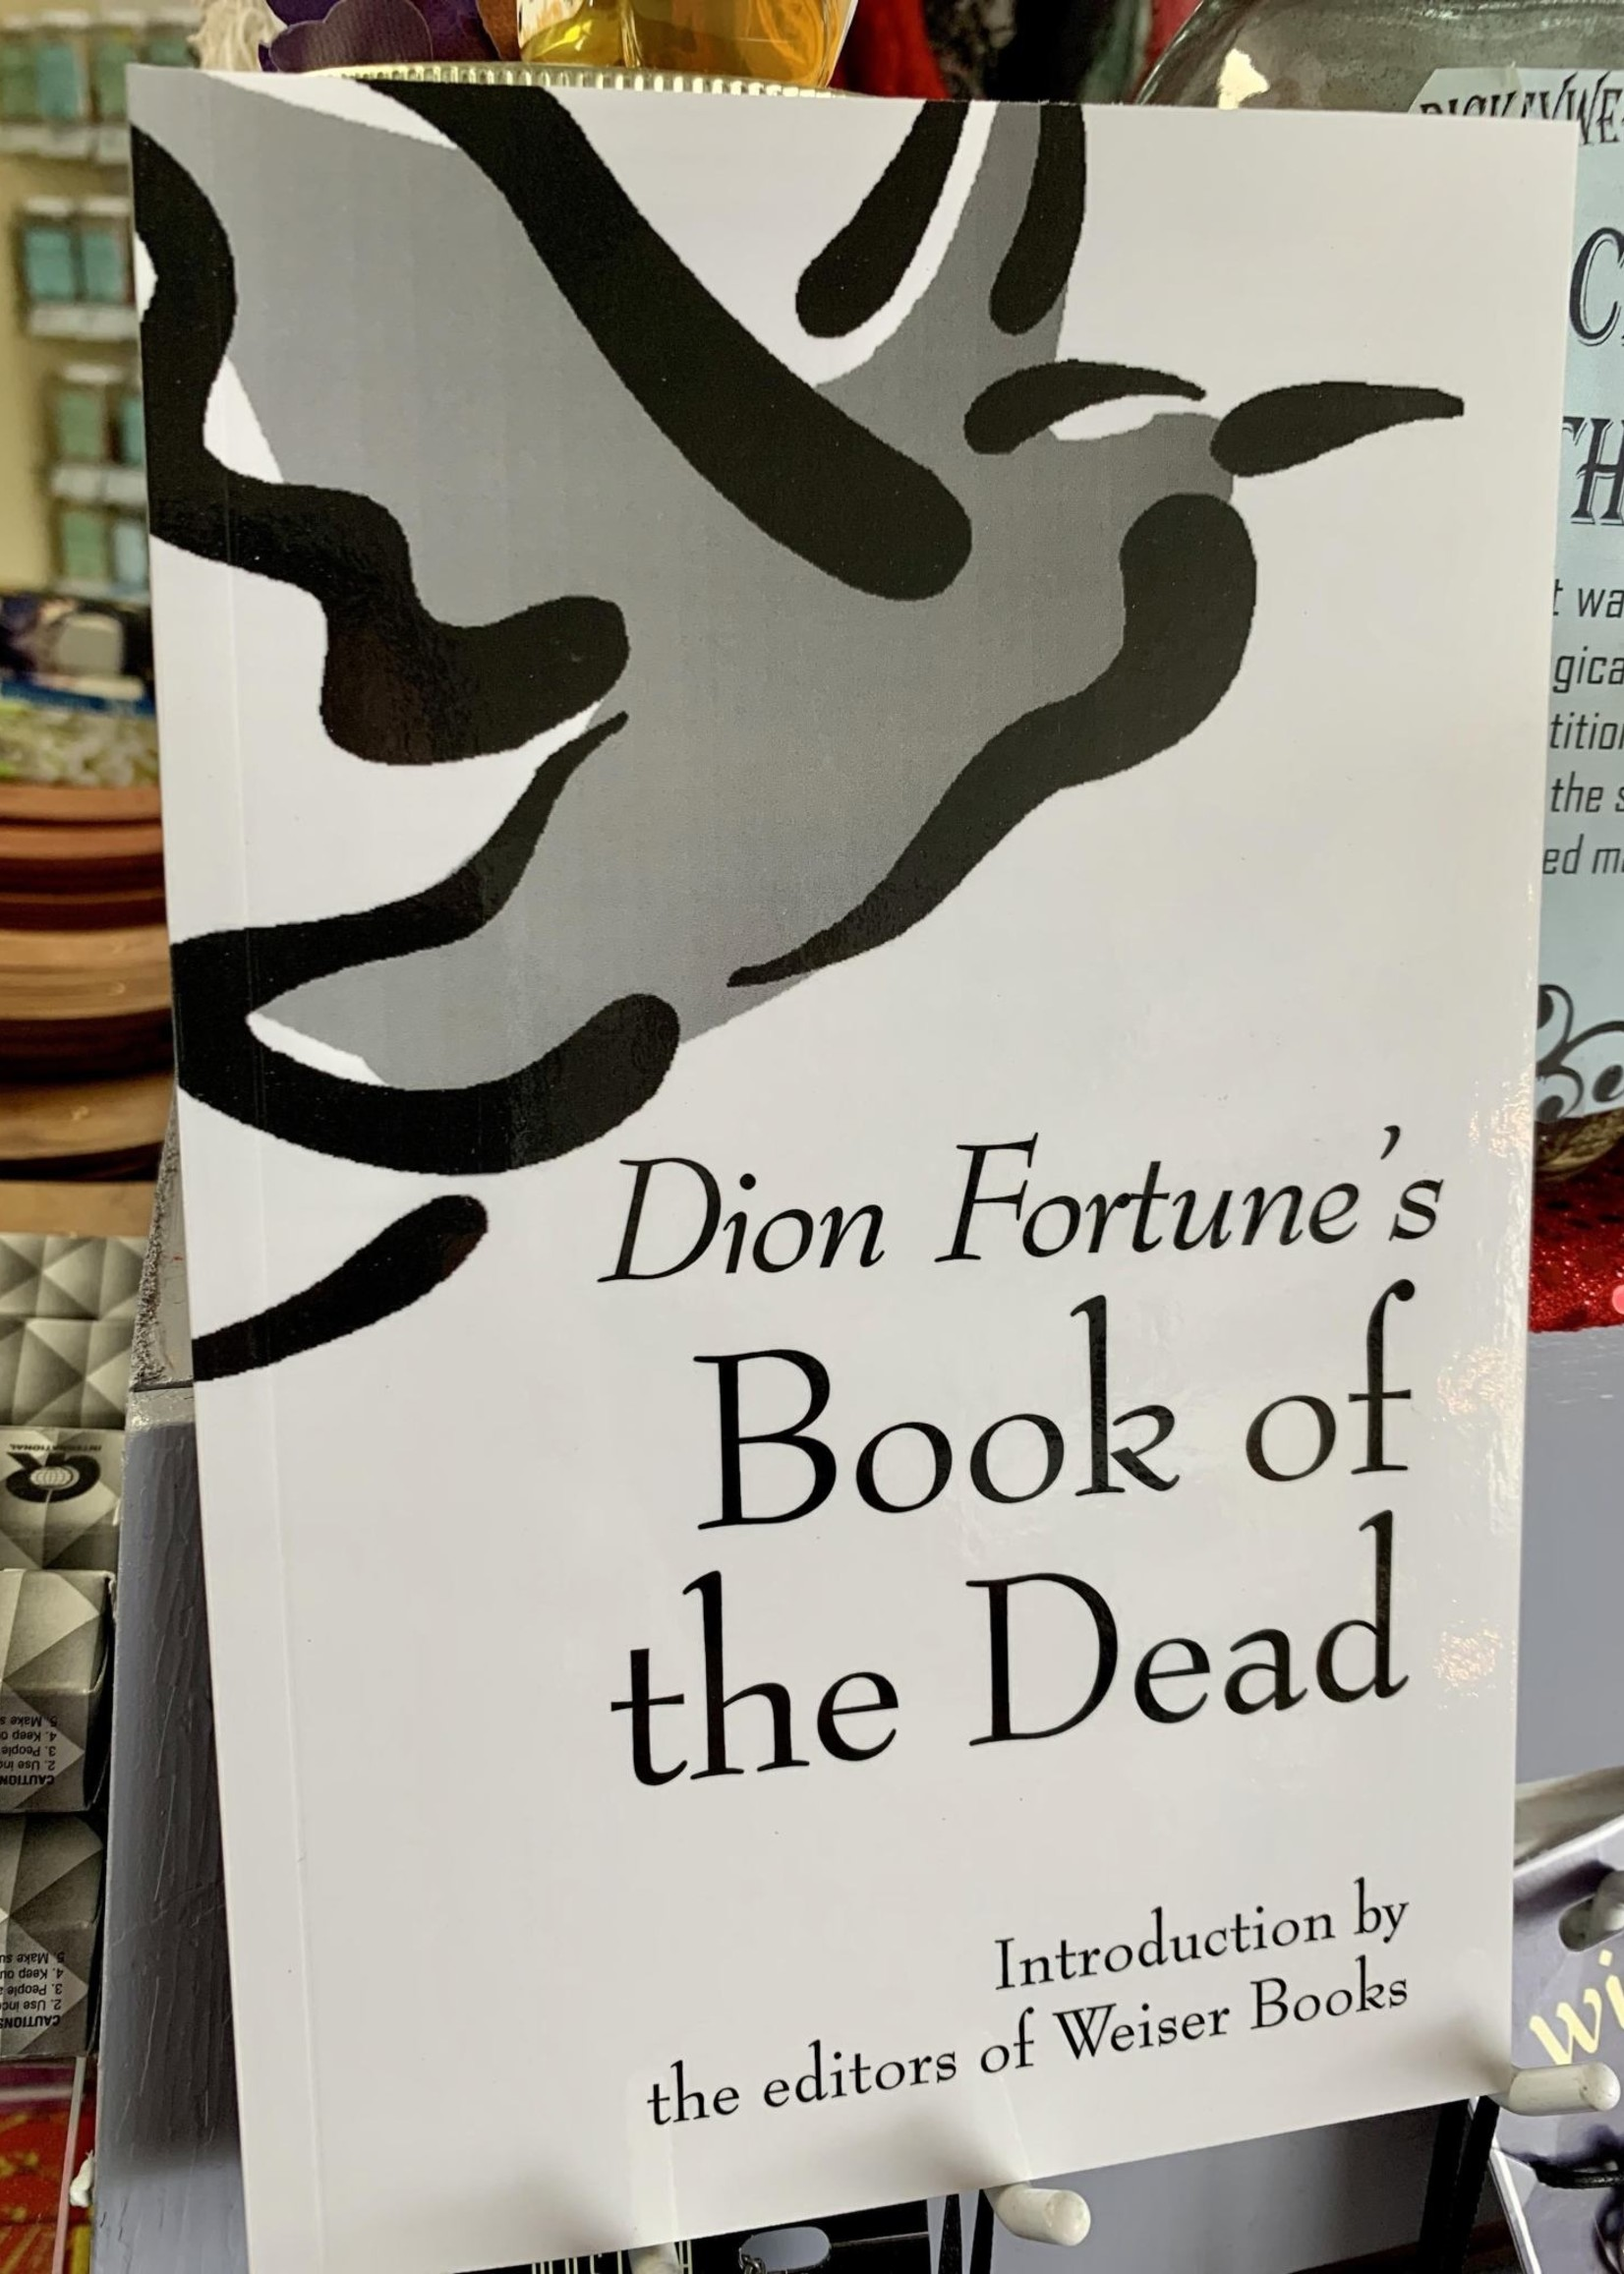 Book of the Dead - Dion Fortune